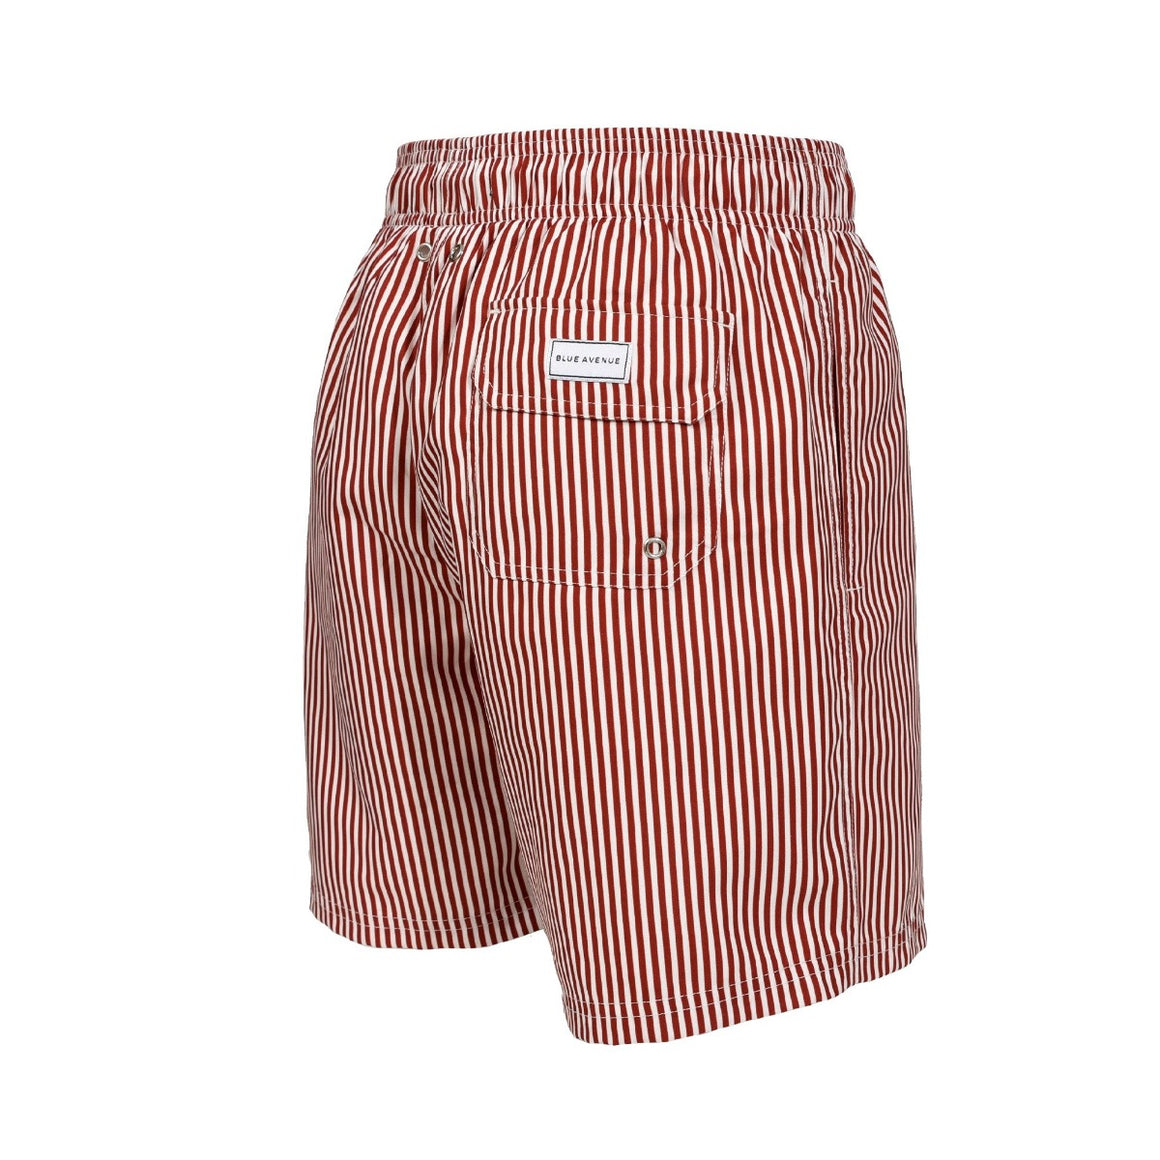 Classic Striped Ancão red and white striped swim shorts - Blue Avenue